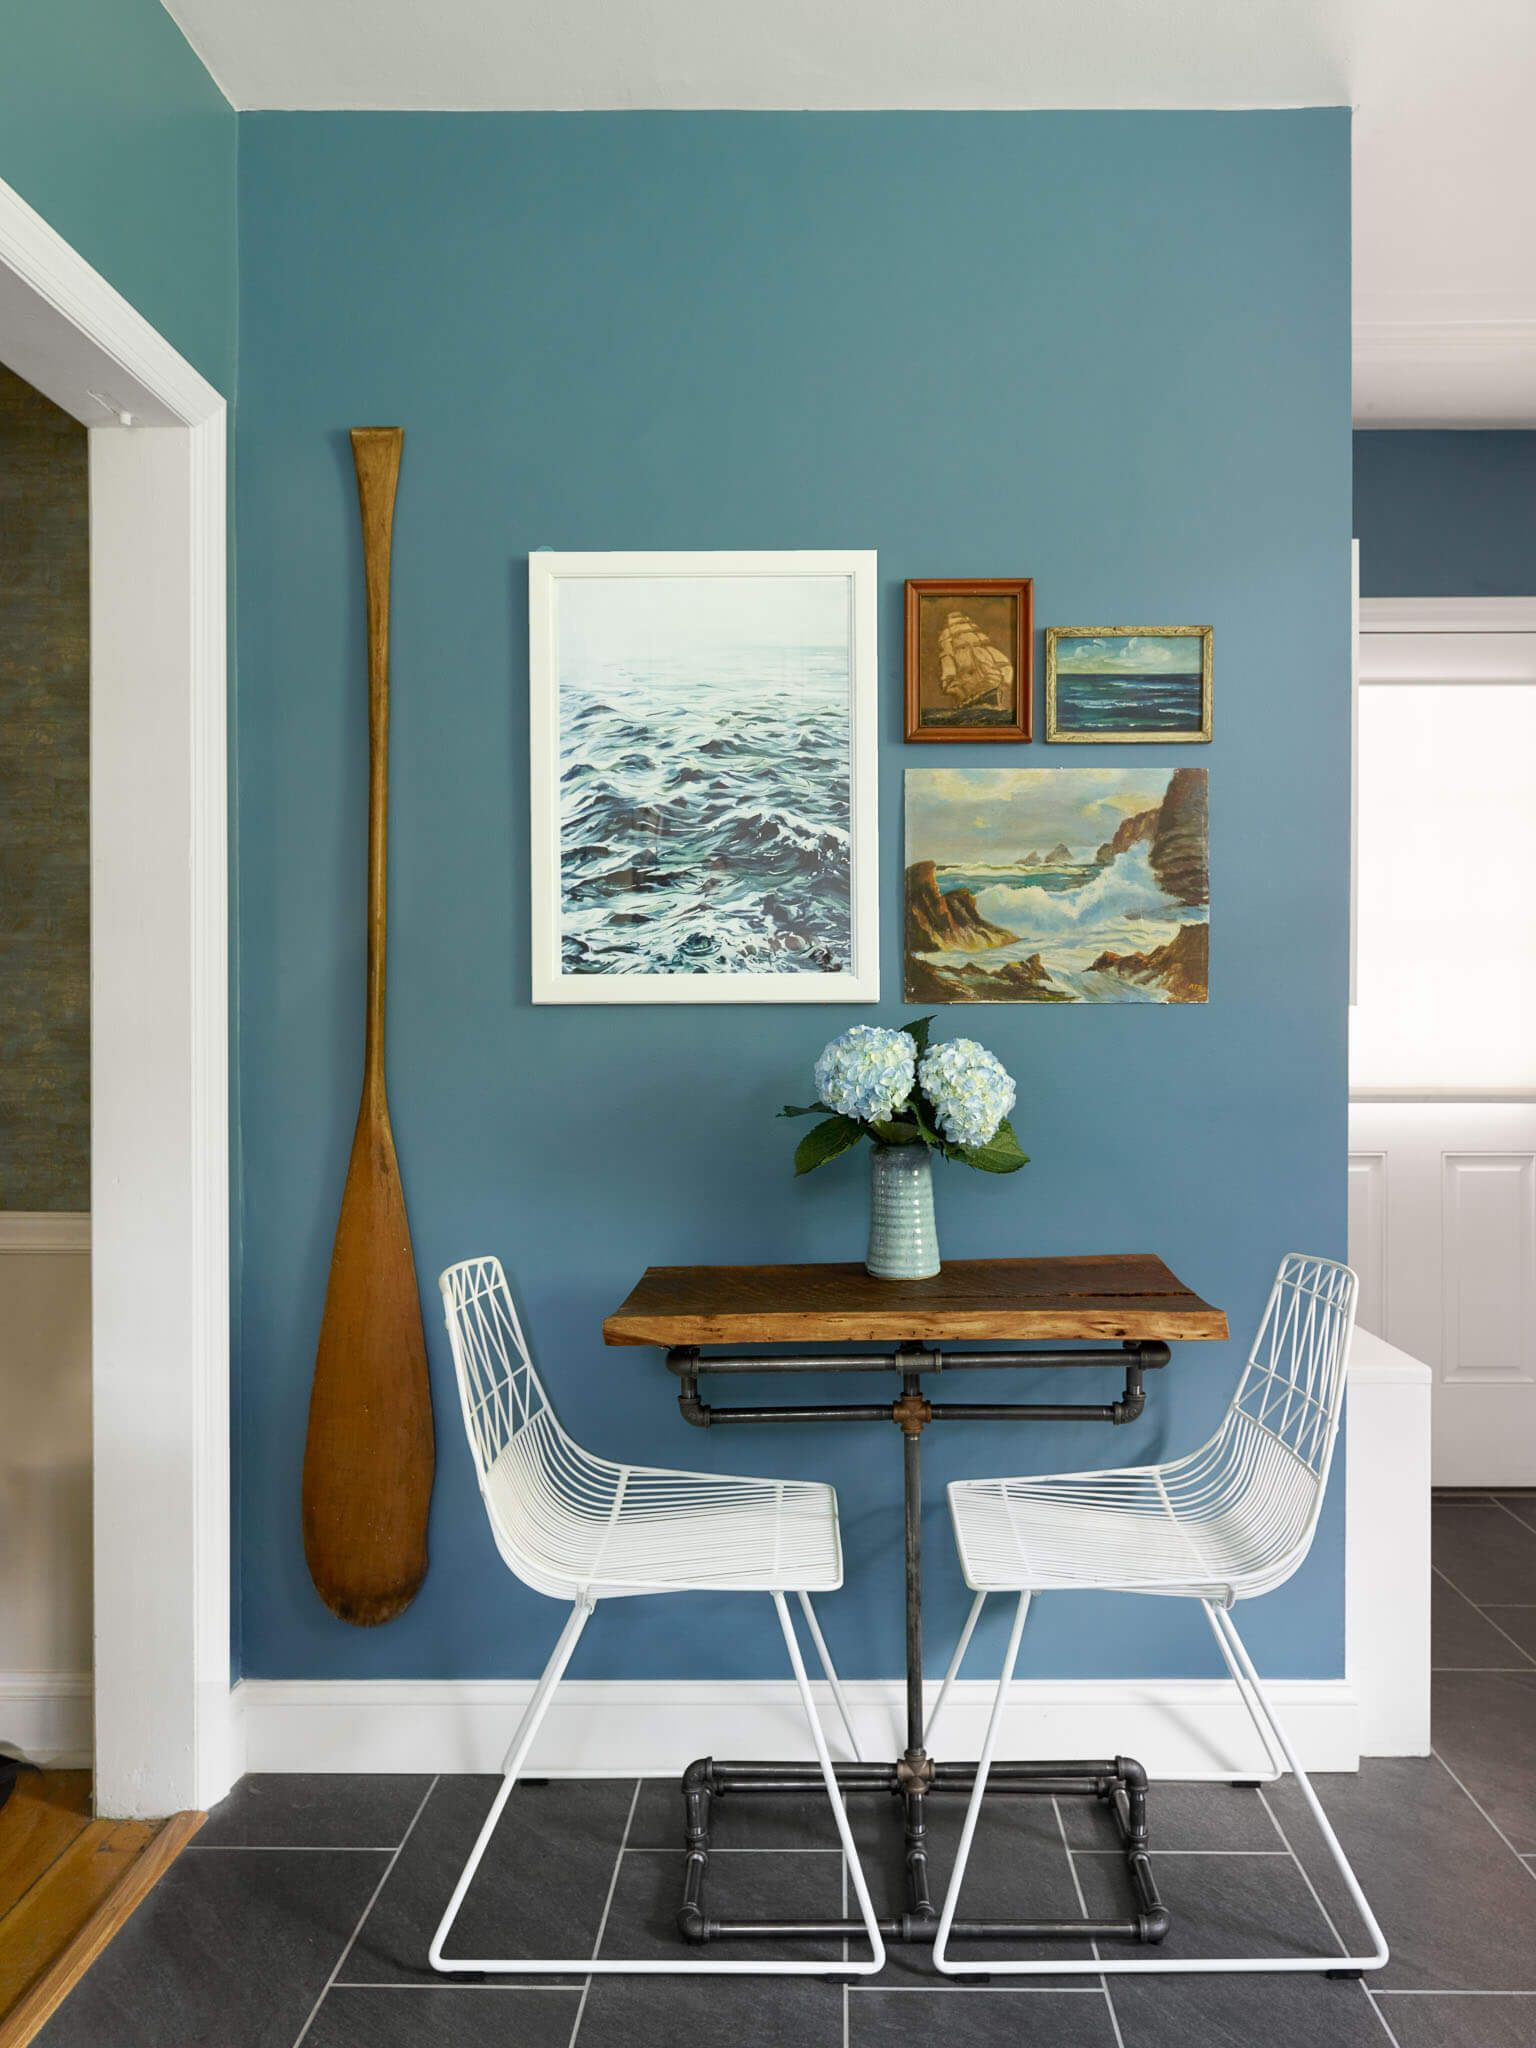 Gorgeous eat in kitchen area breakfast nook blue walls antique paddle as art vintage ocean and lake artwork modern coastal lake house vibe here